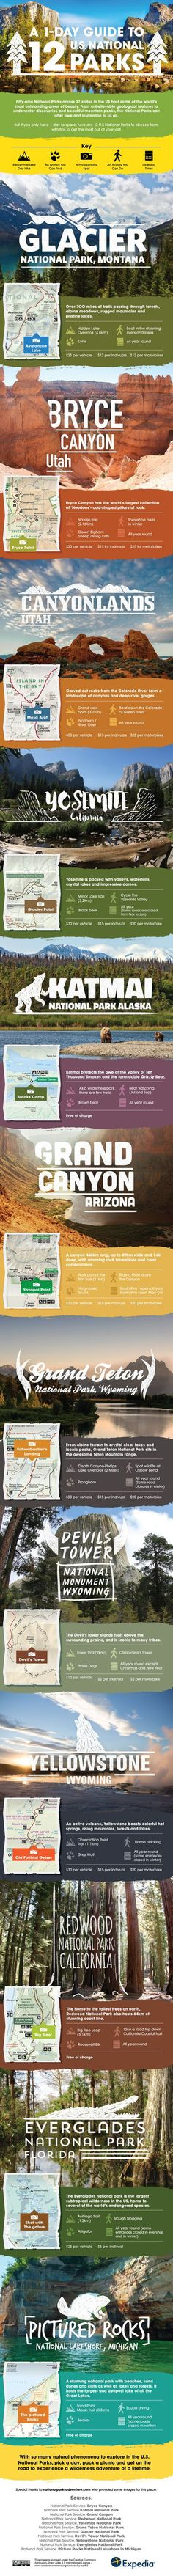 US National Parks Infographic